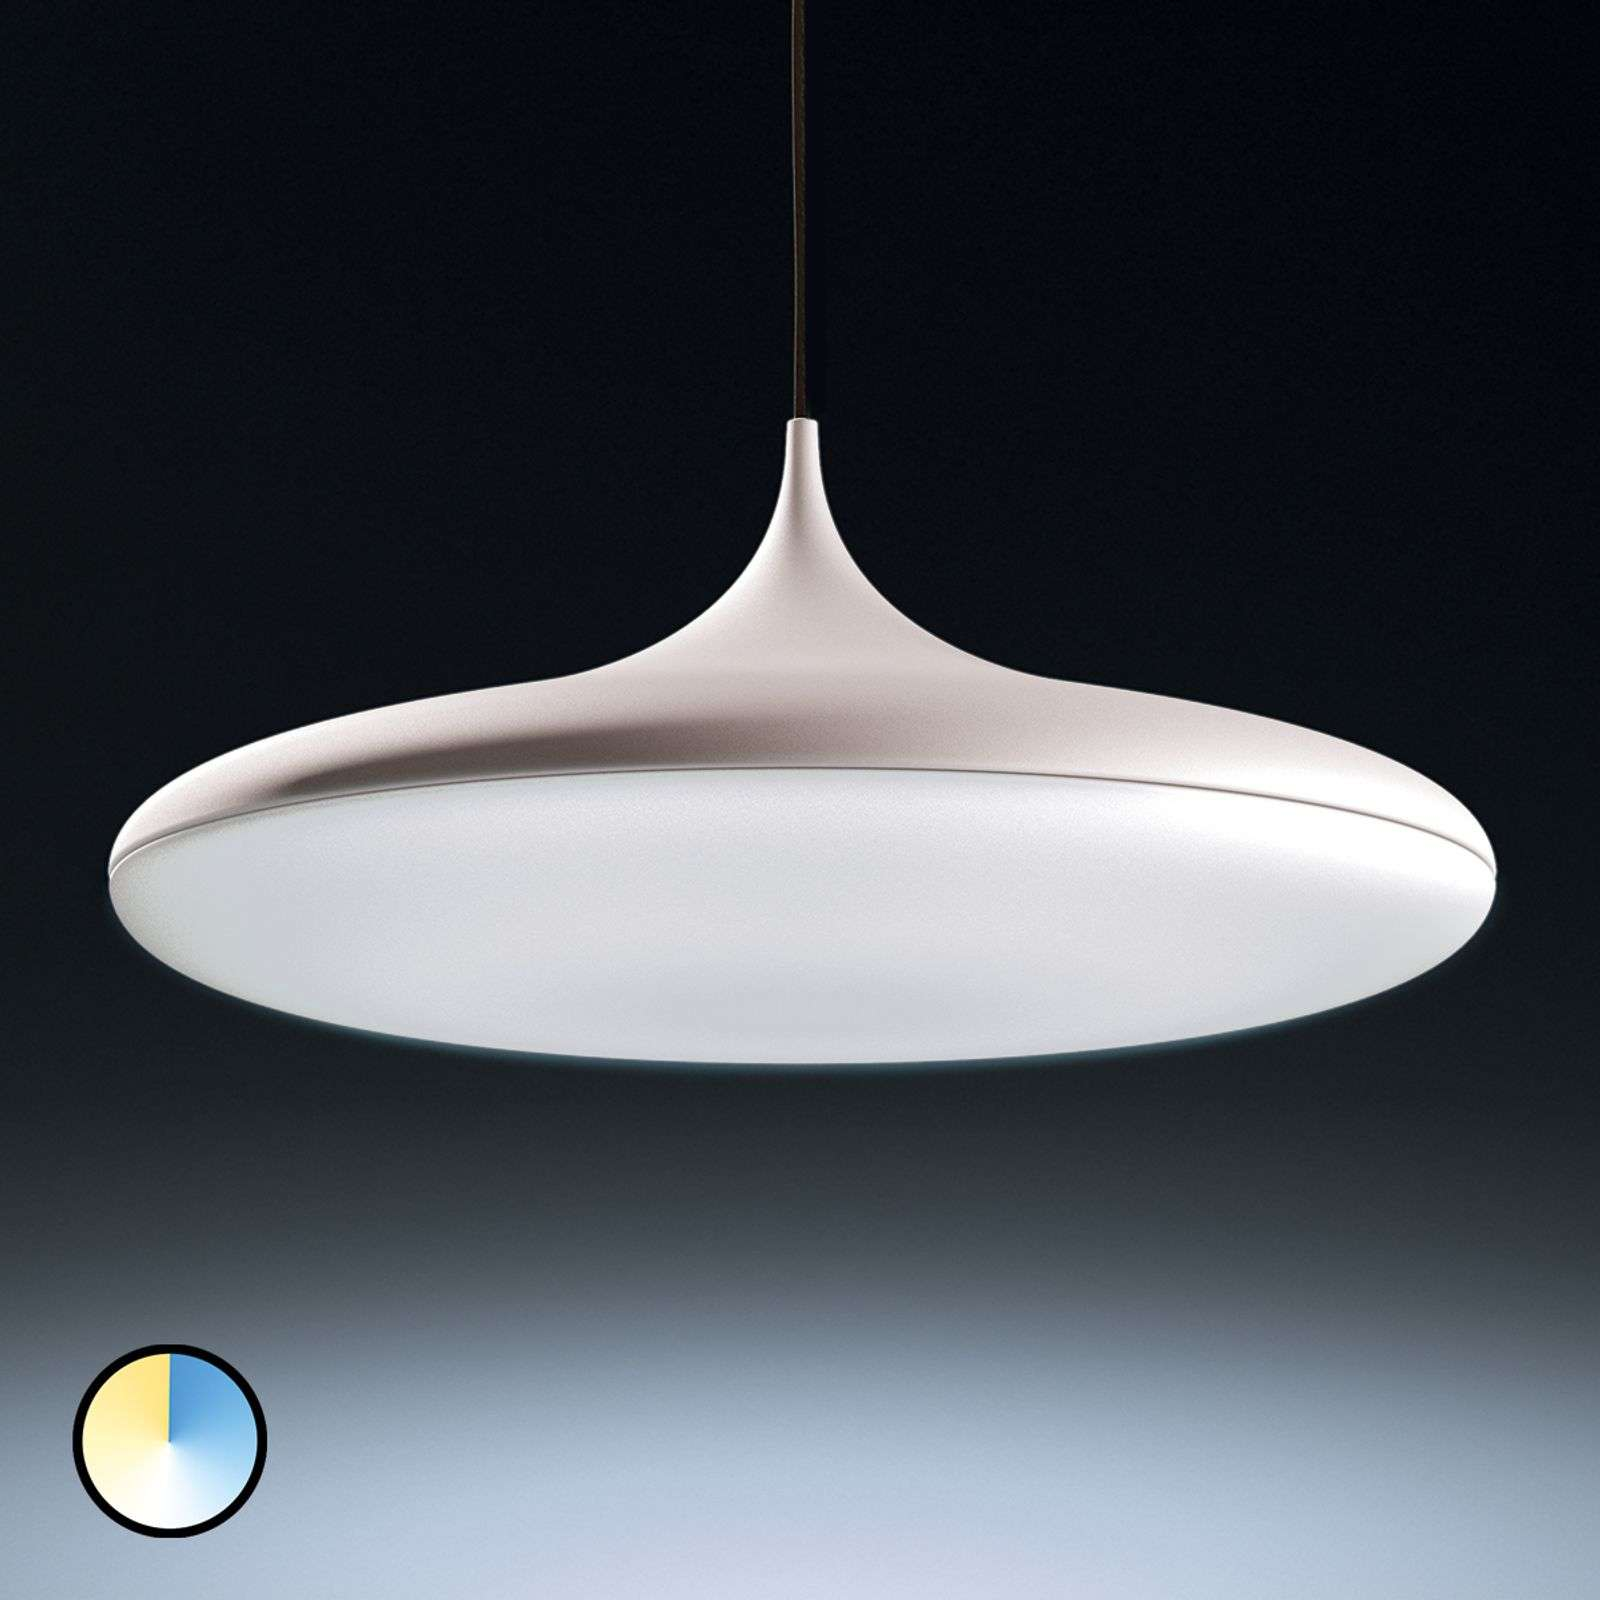 Cher - Philips Hue LED hanglamp, wit